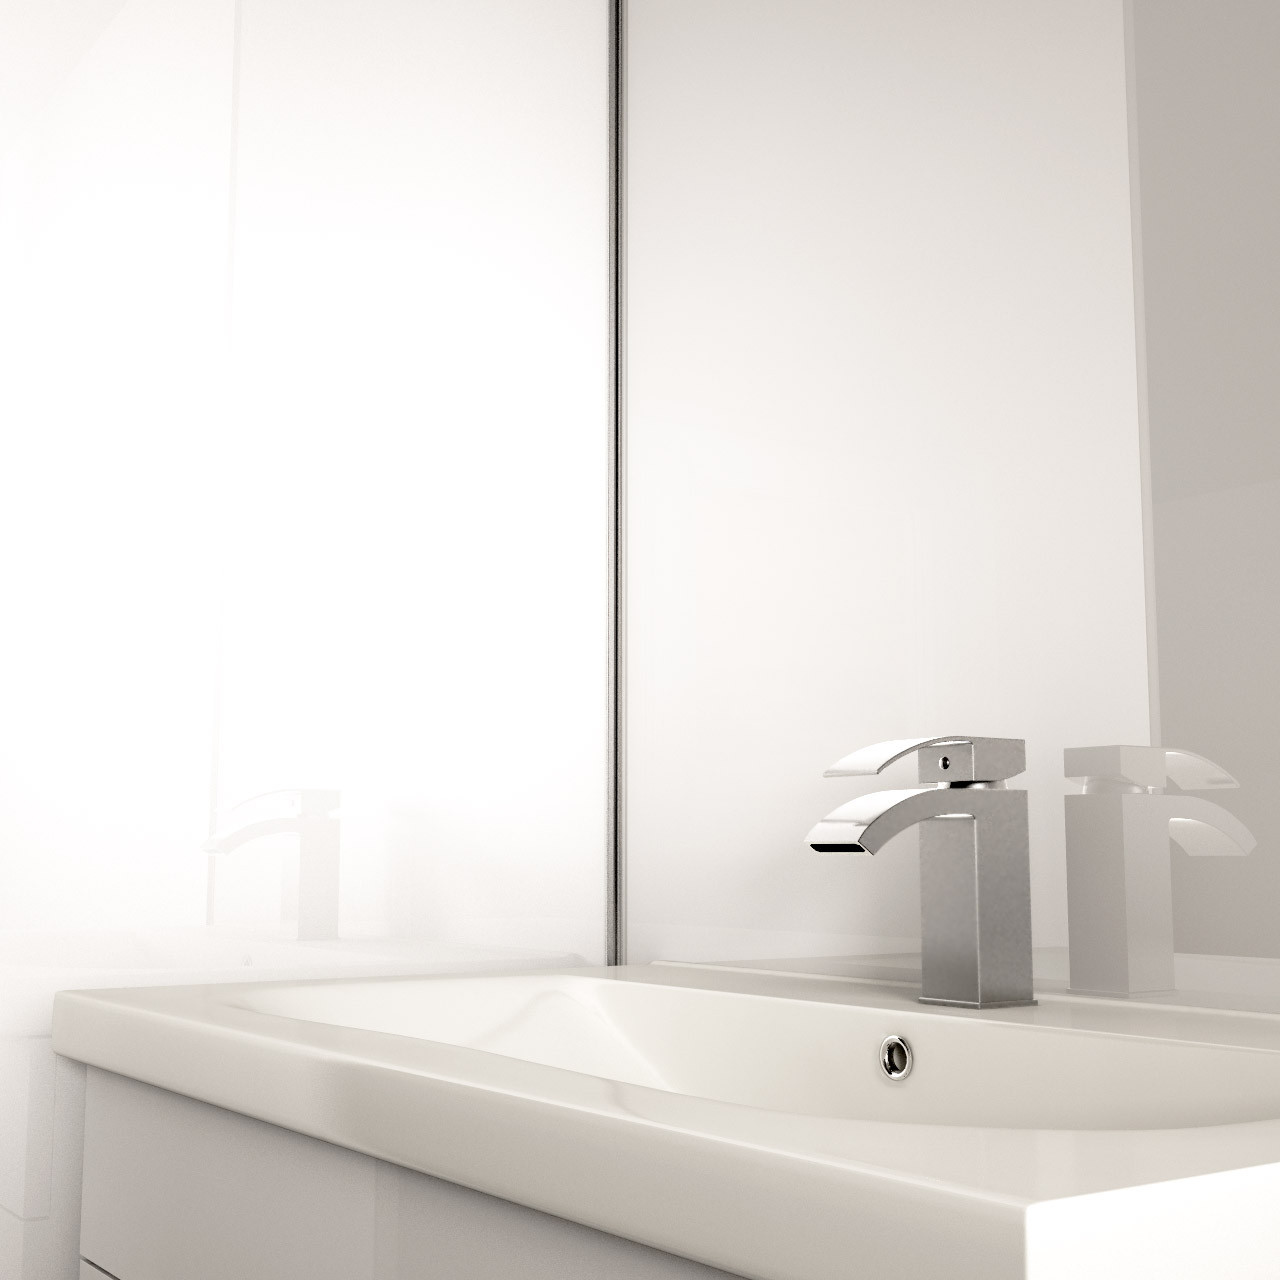 Multipanel Reflect White 2440mm x 1220mm Bathroom Wall Panel